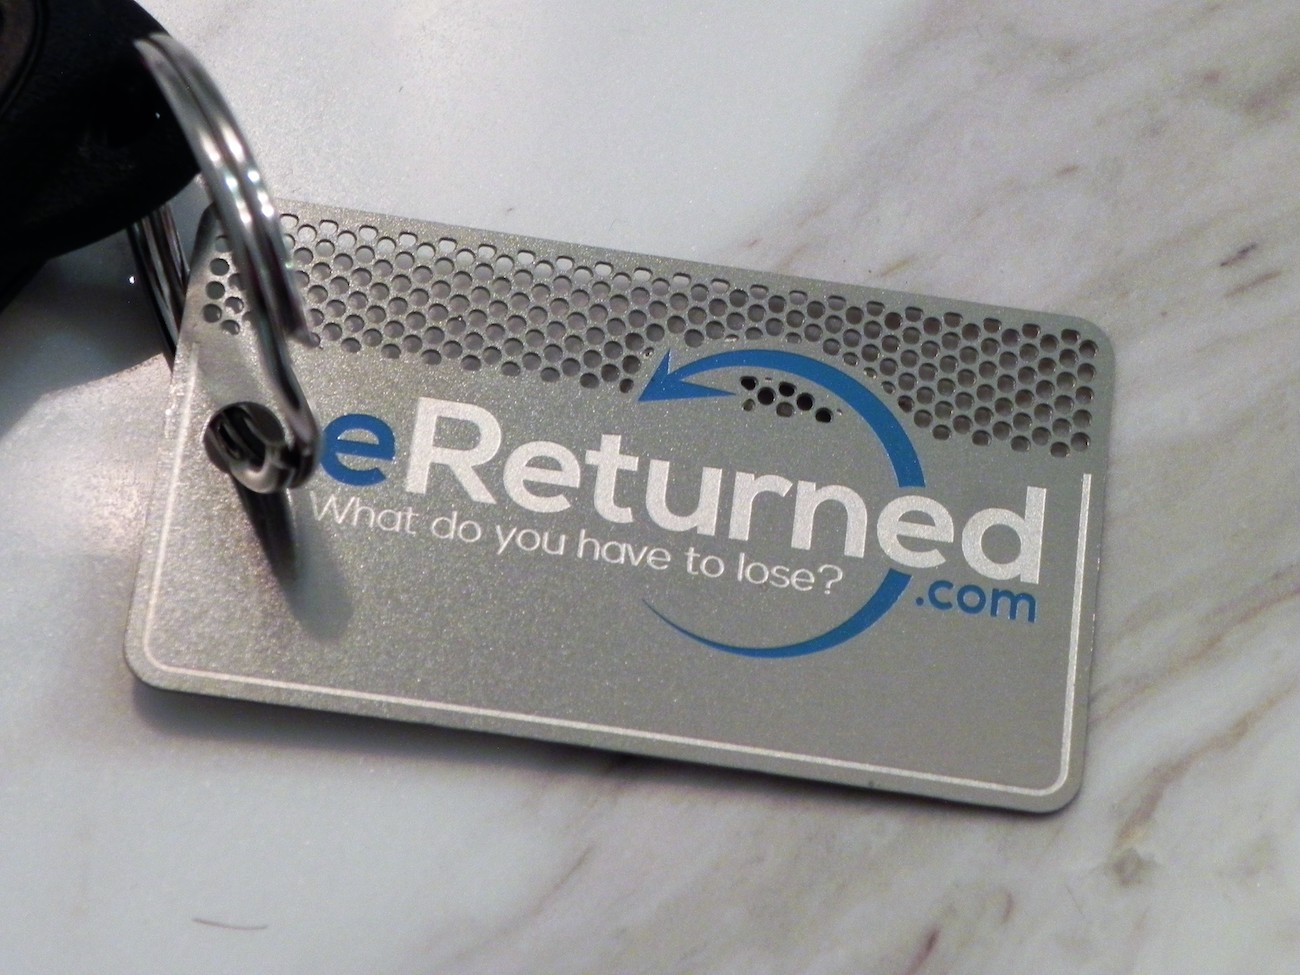 eReturned Identifying Key Tag